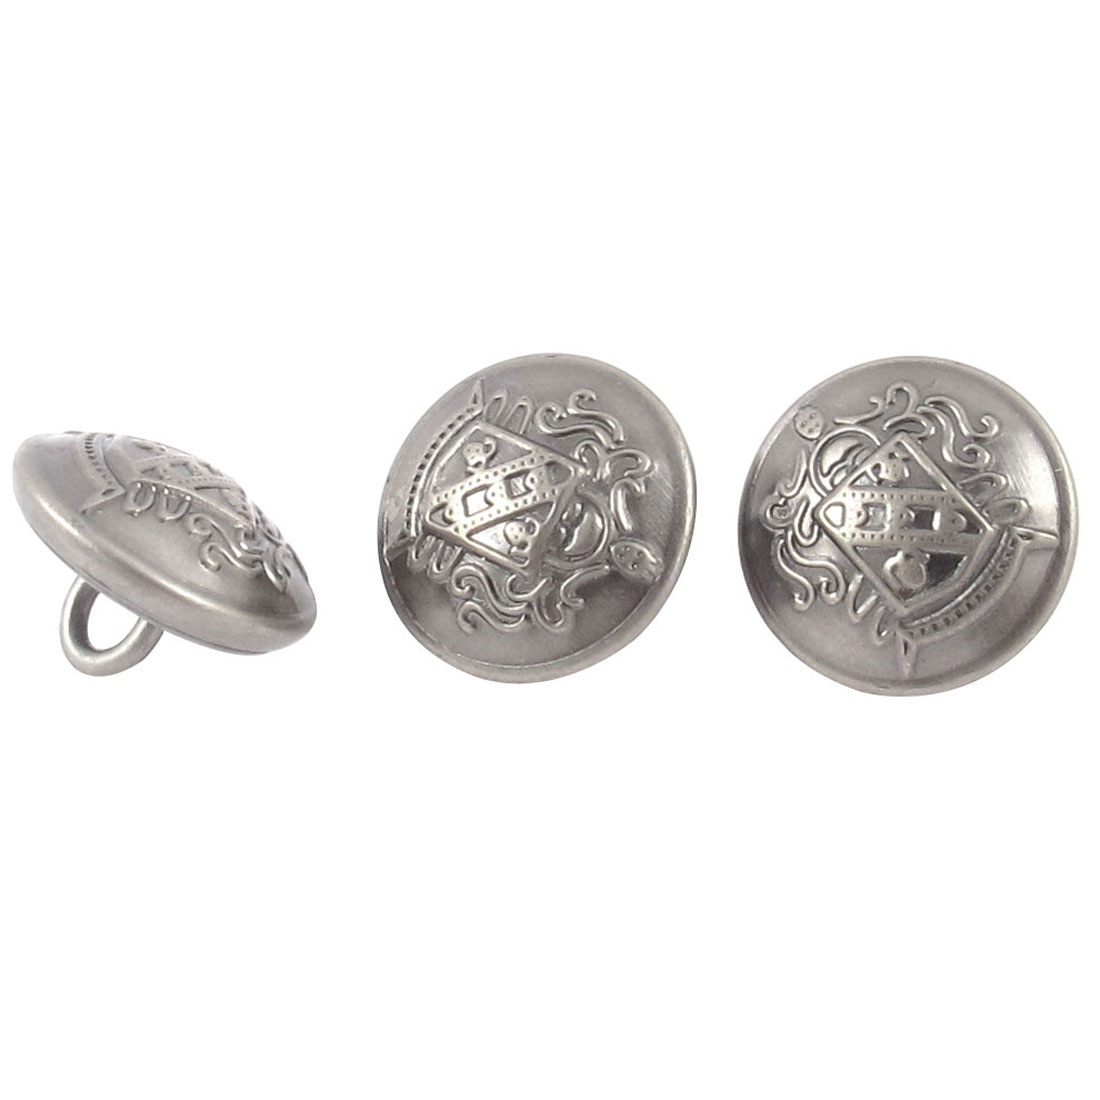 3 Pcs Metal Round Sewing Craft Clothes Clothing Buttons Gray